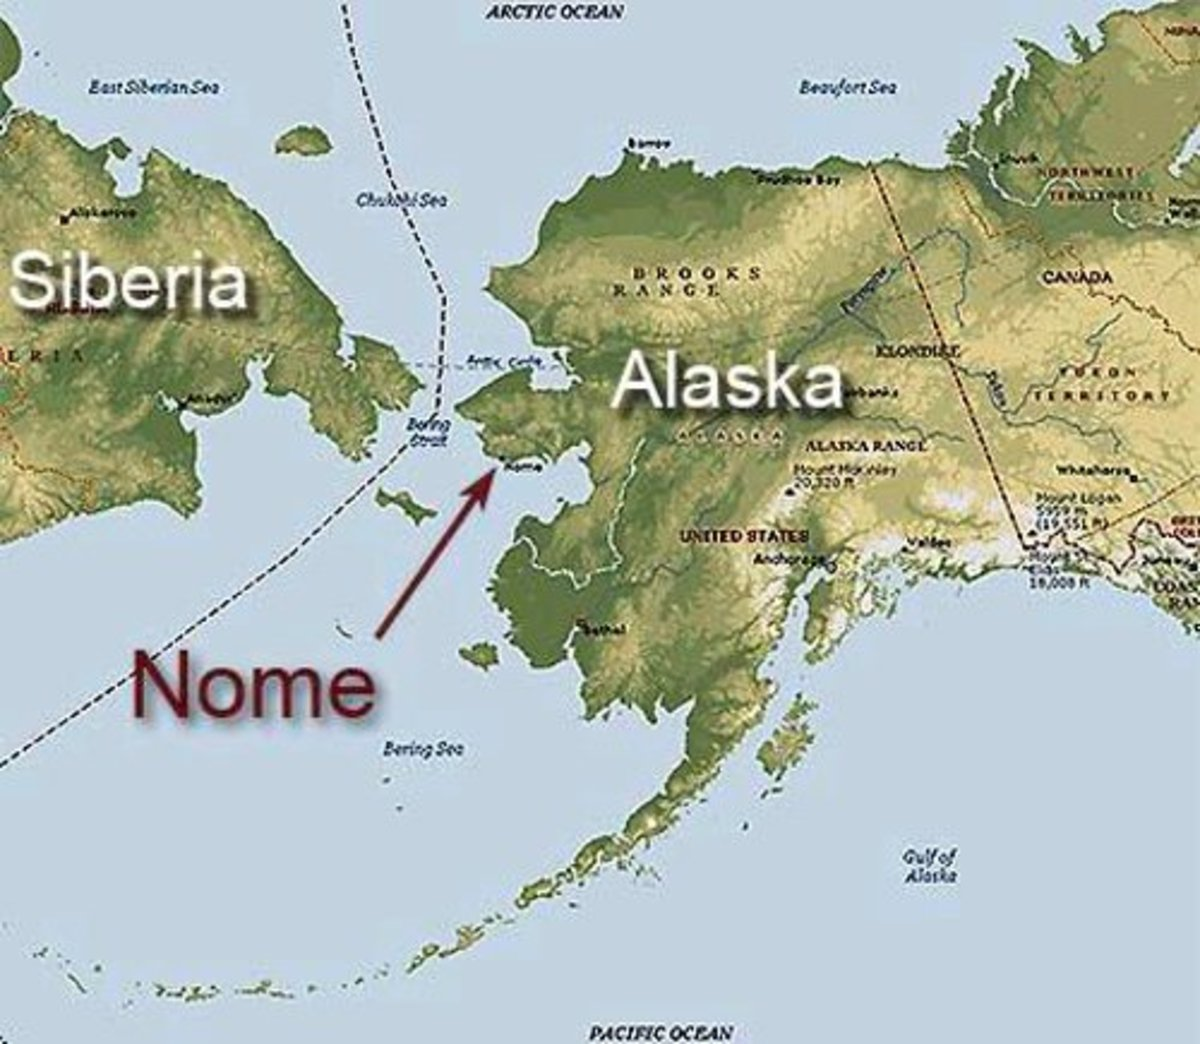 an-alaskan-mystery-the-missing-24-of-nome